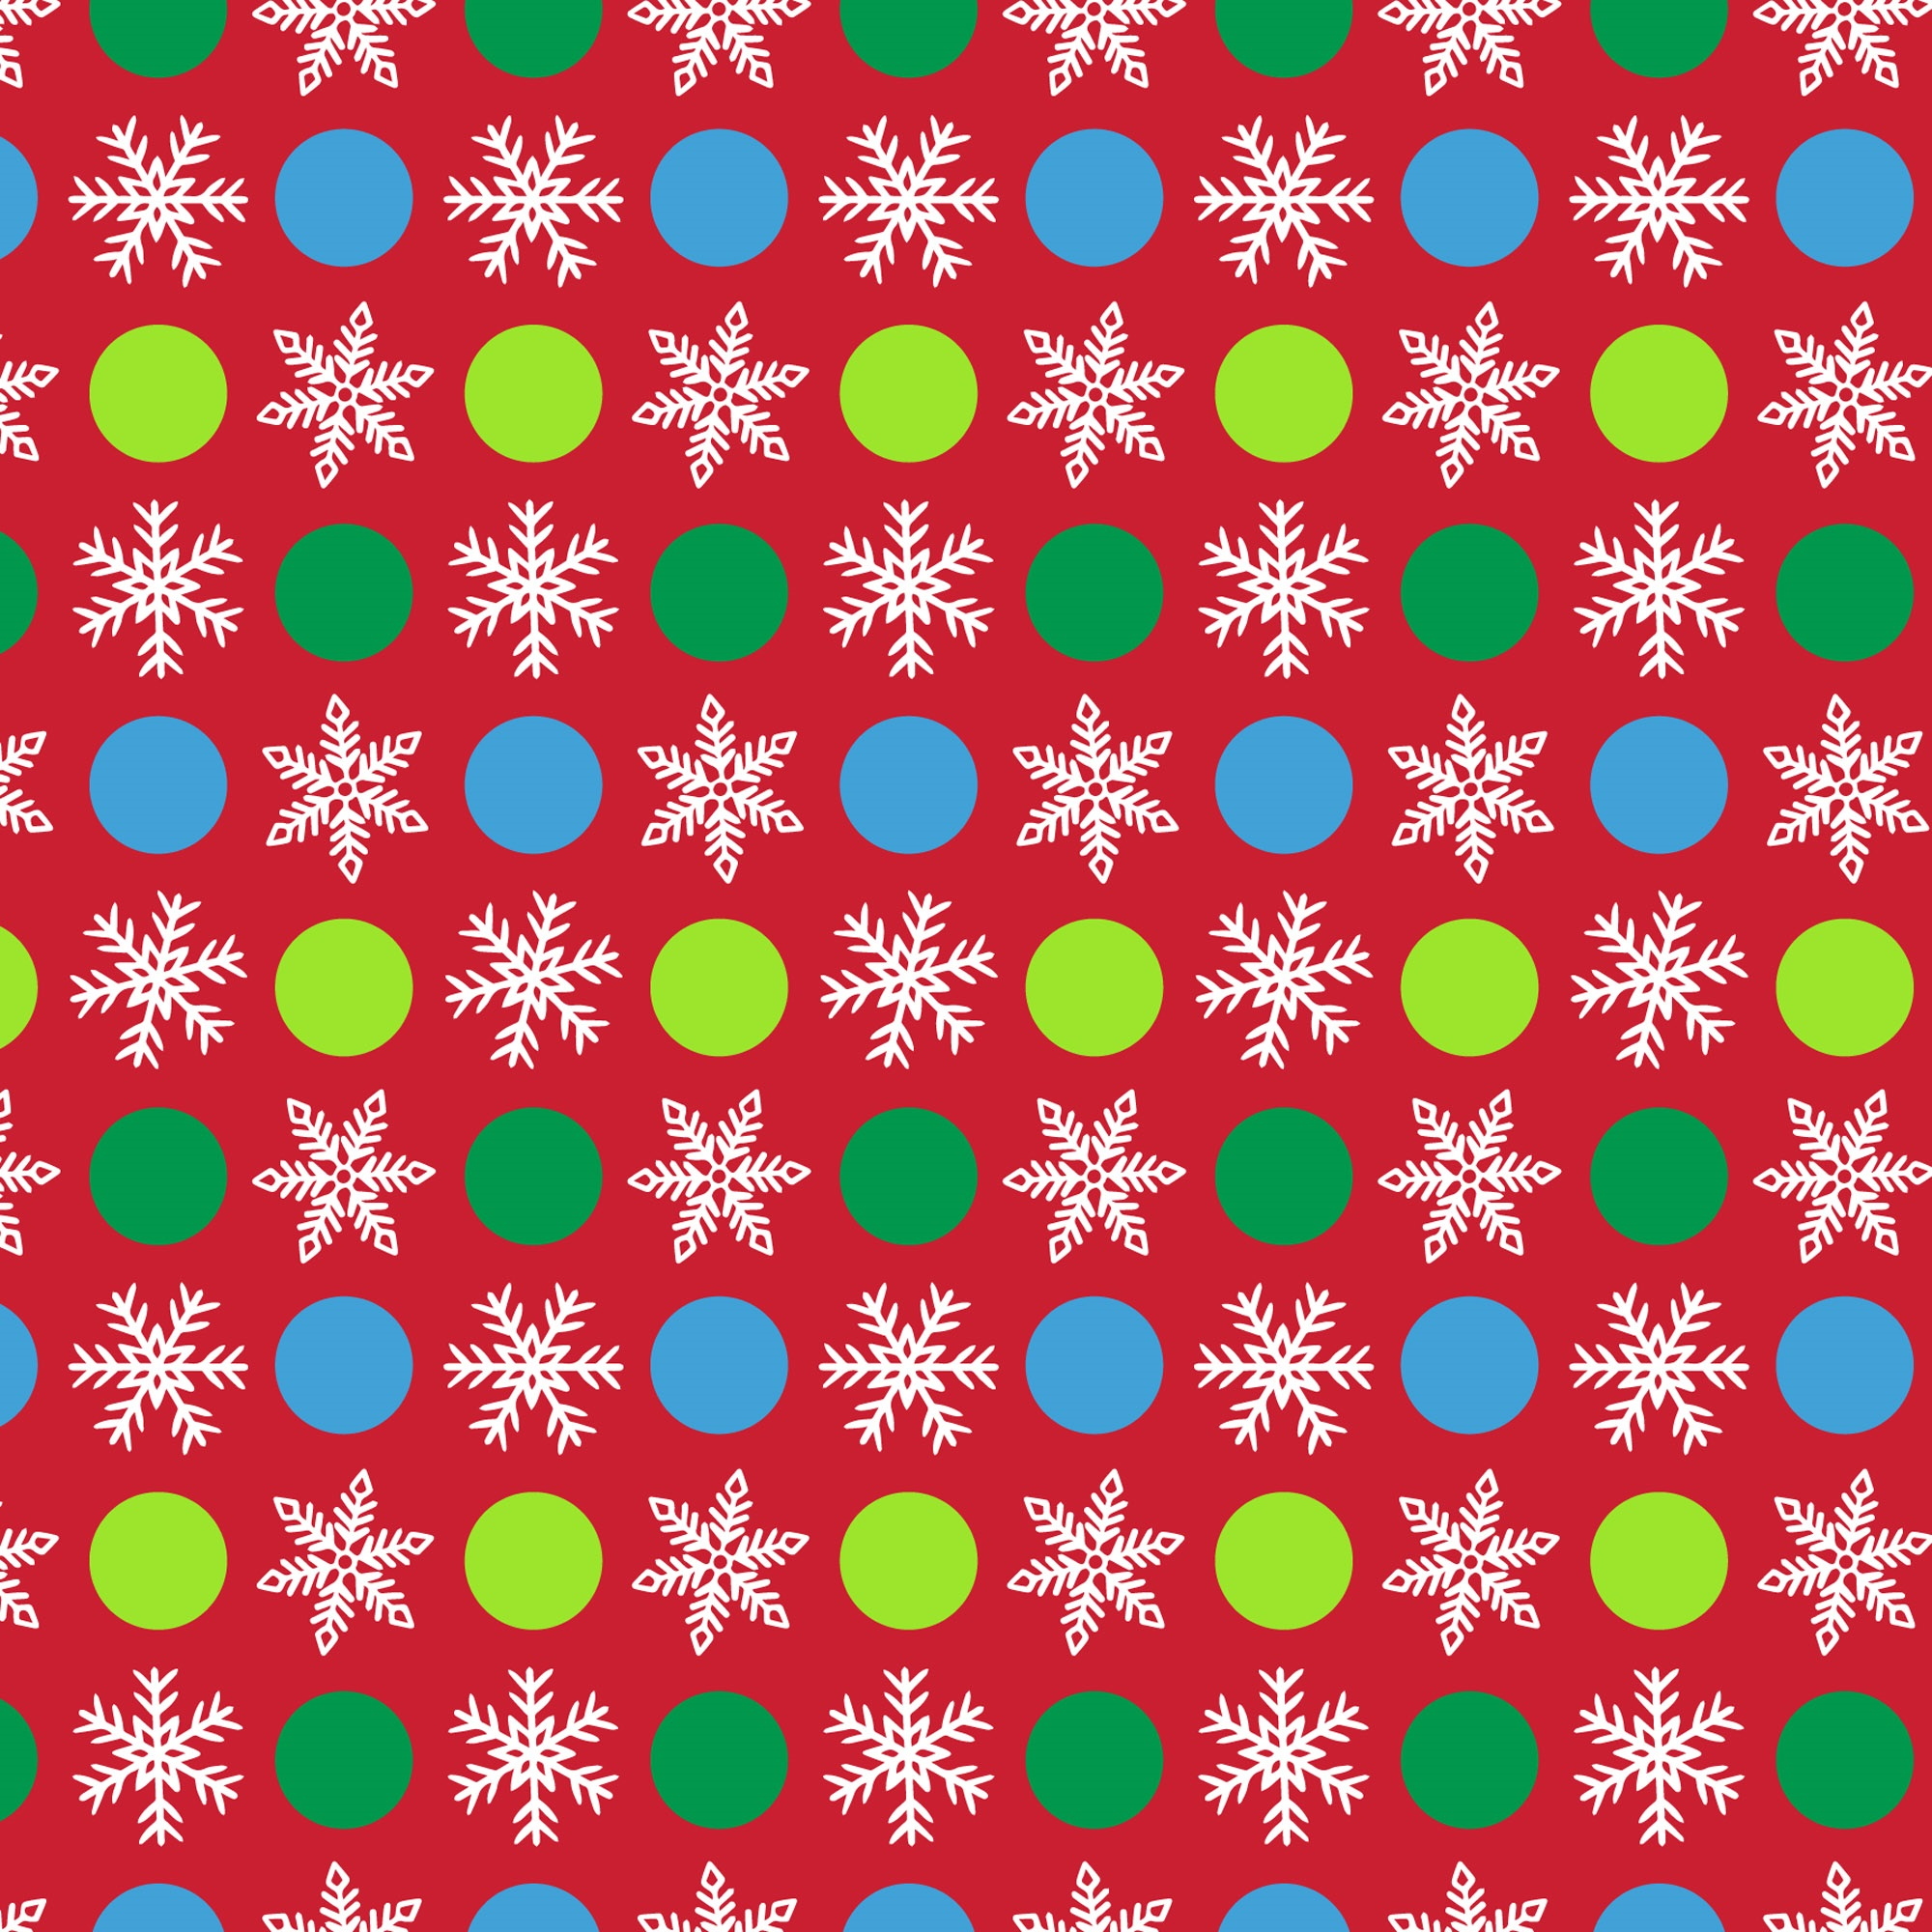 David Textiles Cotton Snowflake on Red Flannel Fabric, per Yard